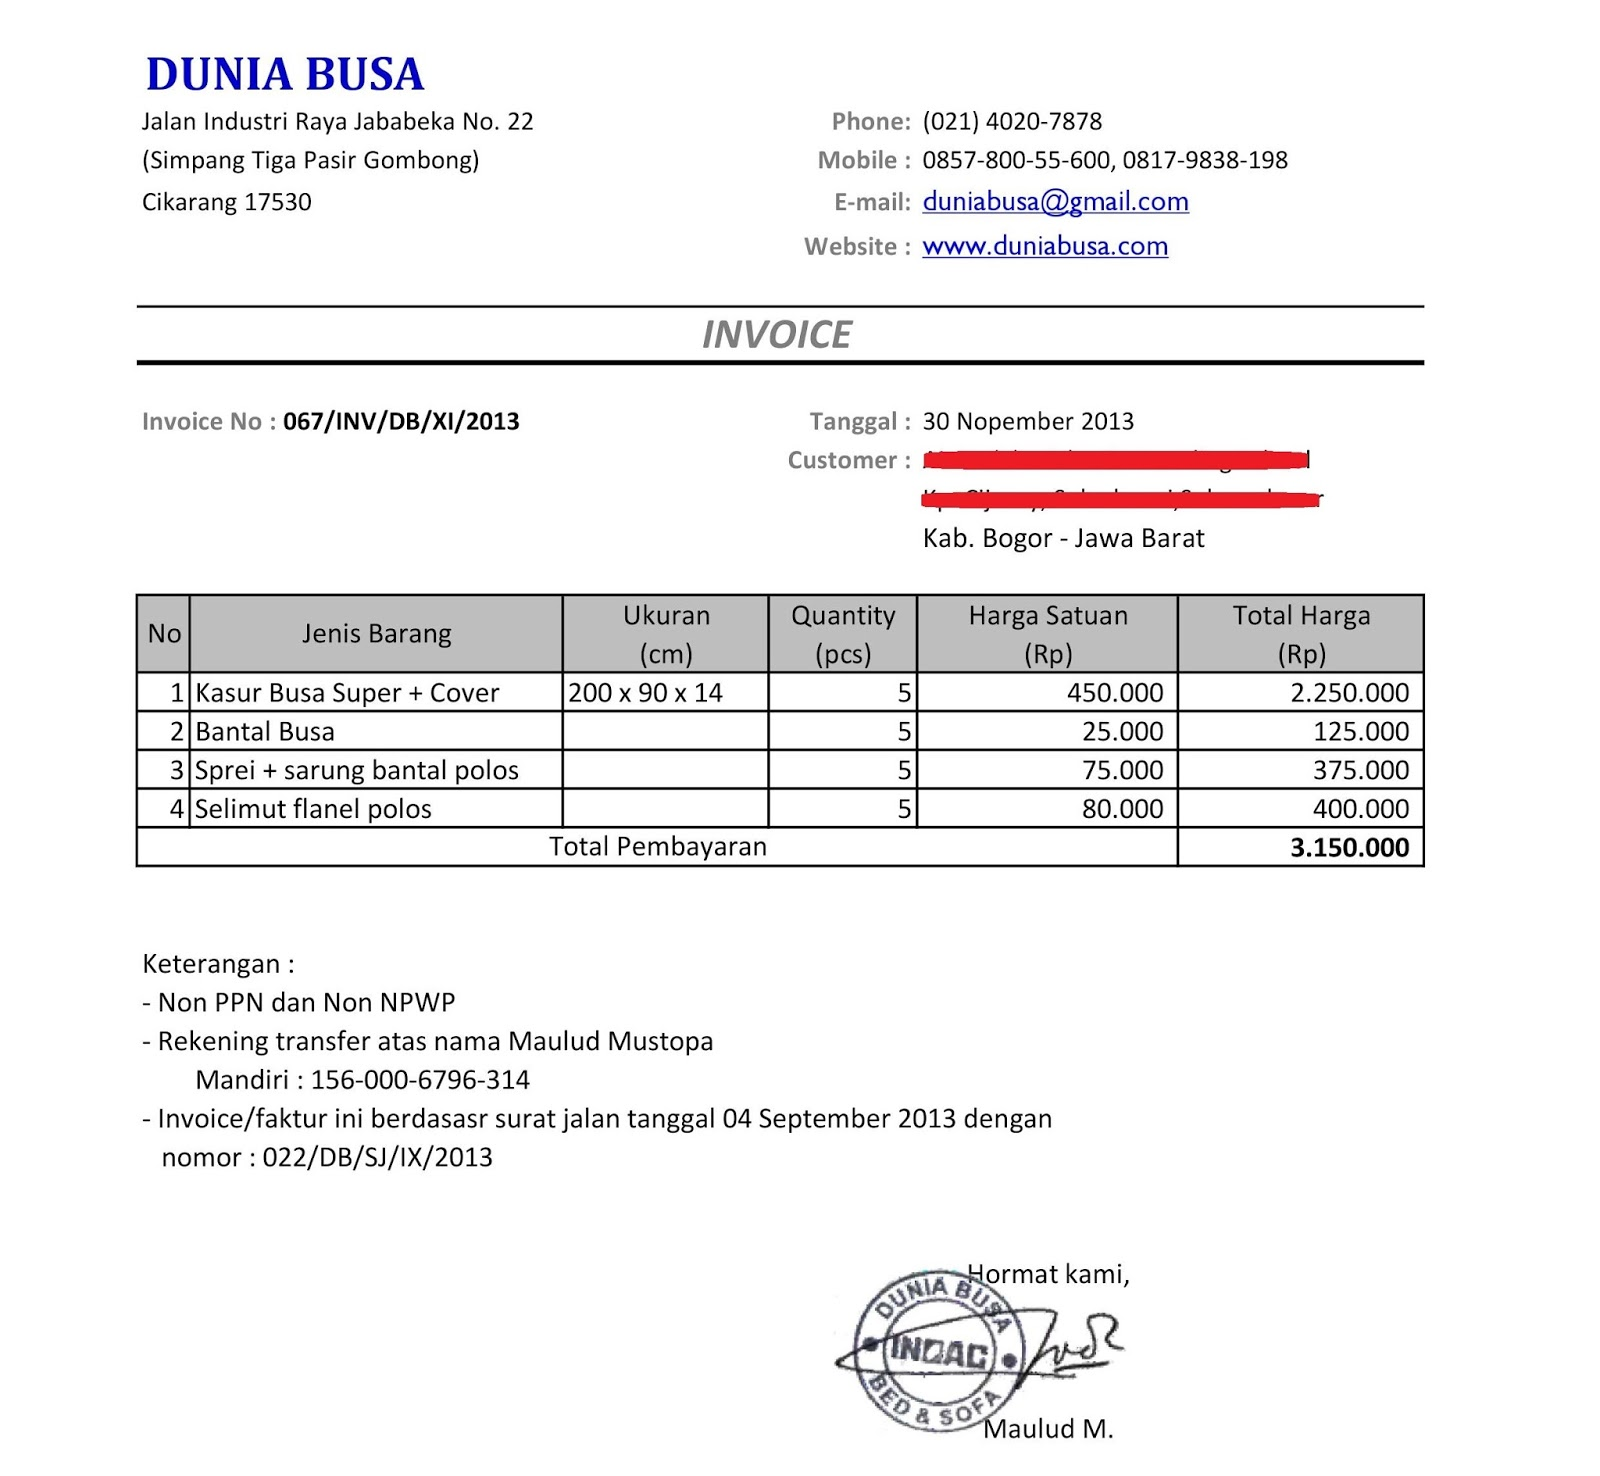 Usdgus  Pleasing Free Invoice Online  Create Invoice Online  Invoice Template  With Hot Contoh Format Invoice Atau Surat Tagihan  Brankas Arsip  Free Invoice Online With Captivating Proforma Invoice Excel Template Also Customs Invoices In Addition How To Make A Proforma Invoice And Specimen Of Proforma Invoice As Well As Example Of Invoice Template Additionally Stock Control And Invoicing Software From Sklepco With Usdgus  Hot Free Invoice Online  Create Invoice Online  Invoice Template  With Captivating Contoh Format Invoice Atau Surat Tagihan  Brankas Arsip  Free Invoice Online And Pleasing Proforma Invoice Excel Template Also Customs Invoices In Addition How To Make A Proforma Invoice From Sklepco